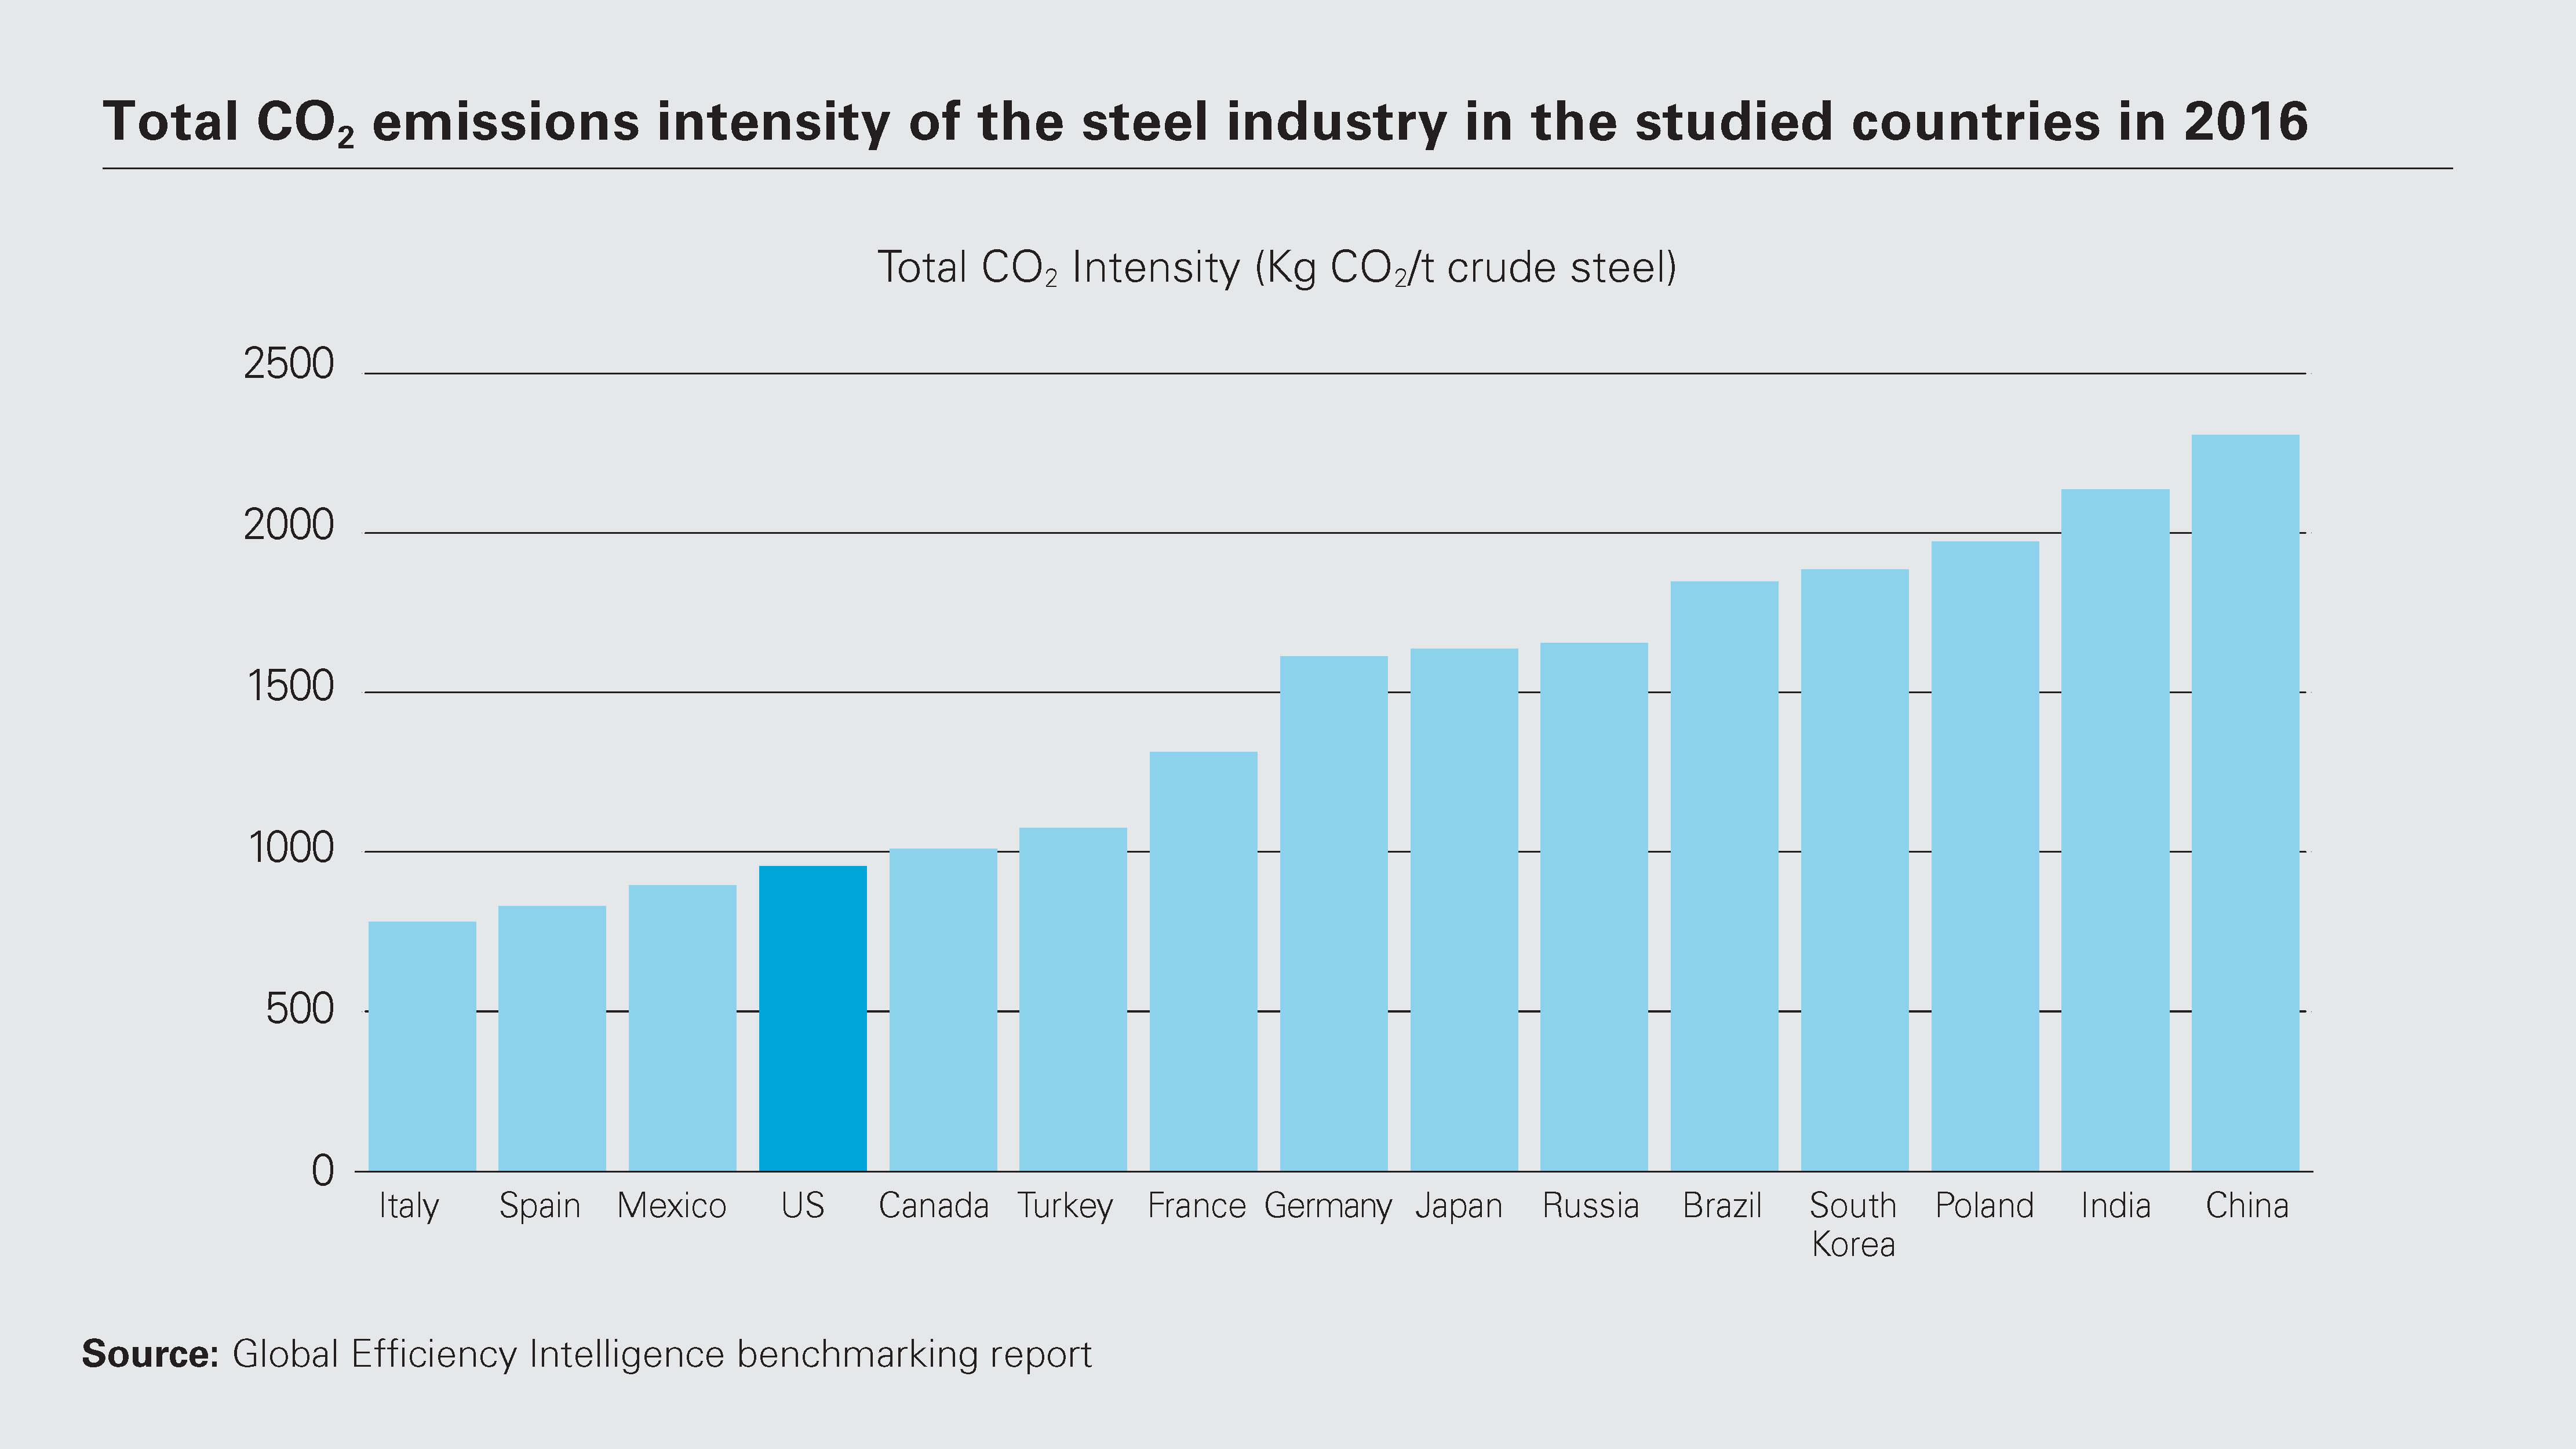 Total CO2 emissions intensity of the steel industry in the studied countries in 2016